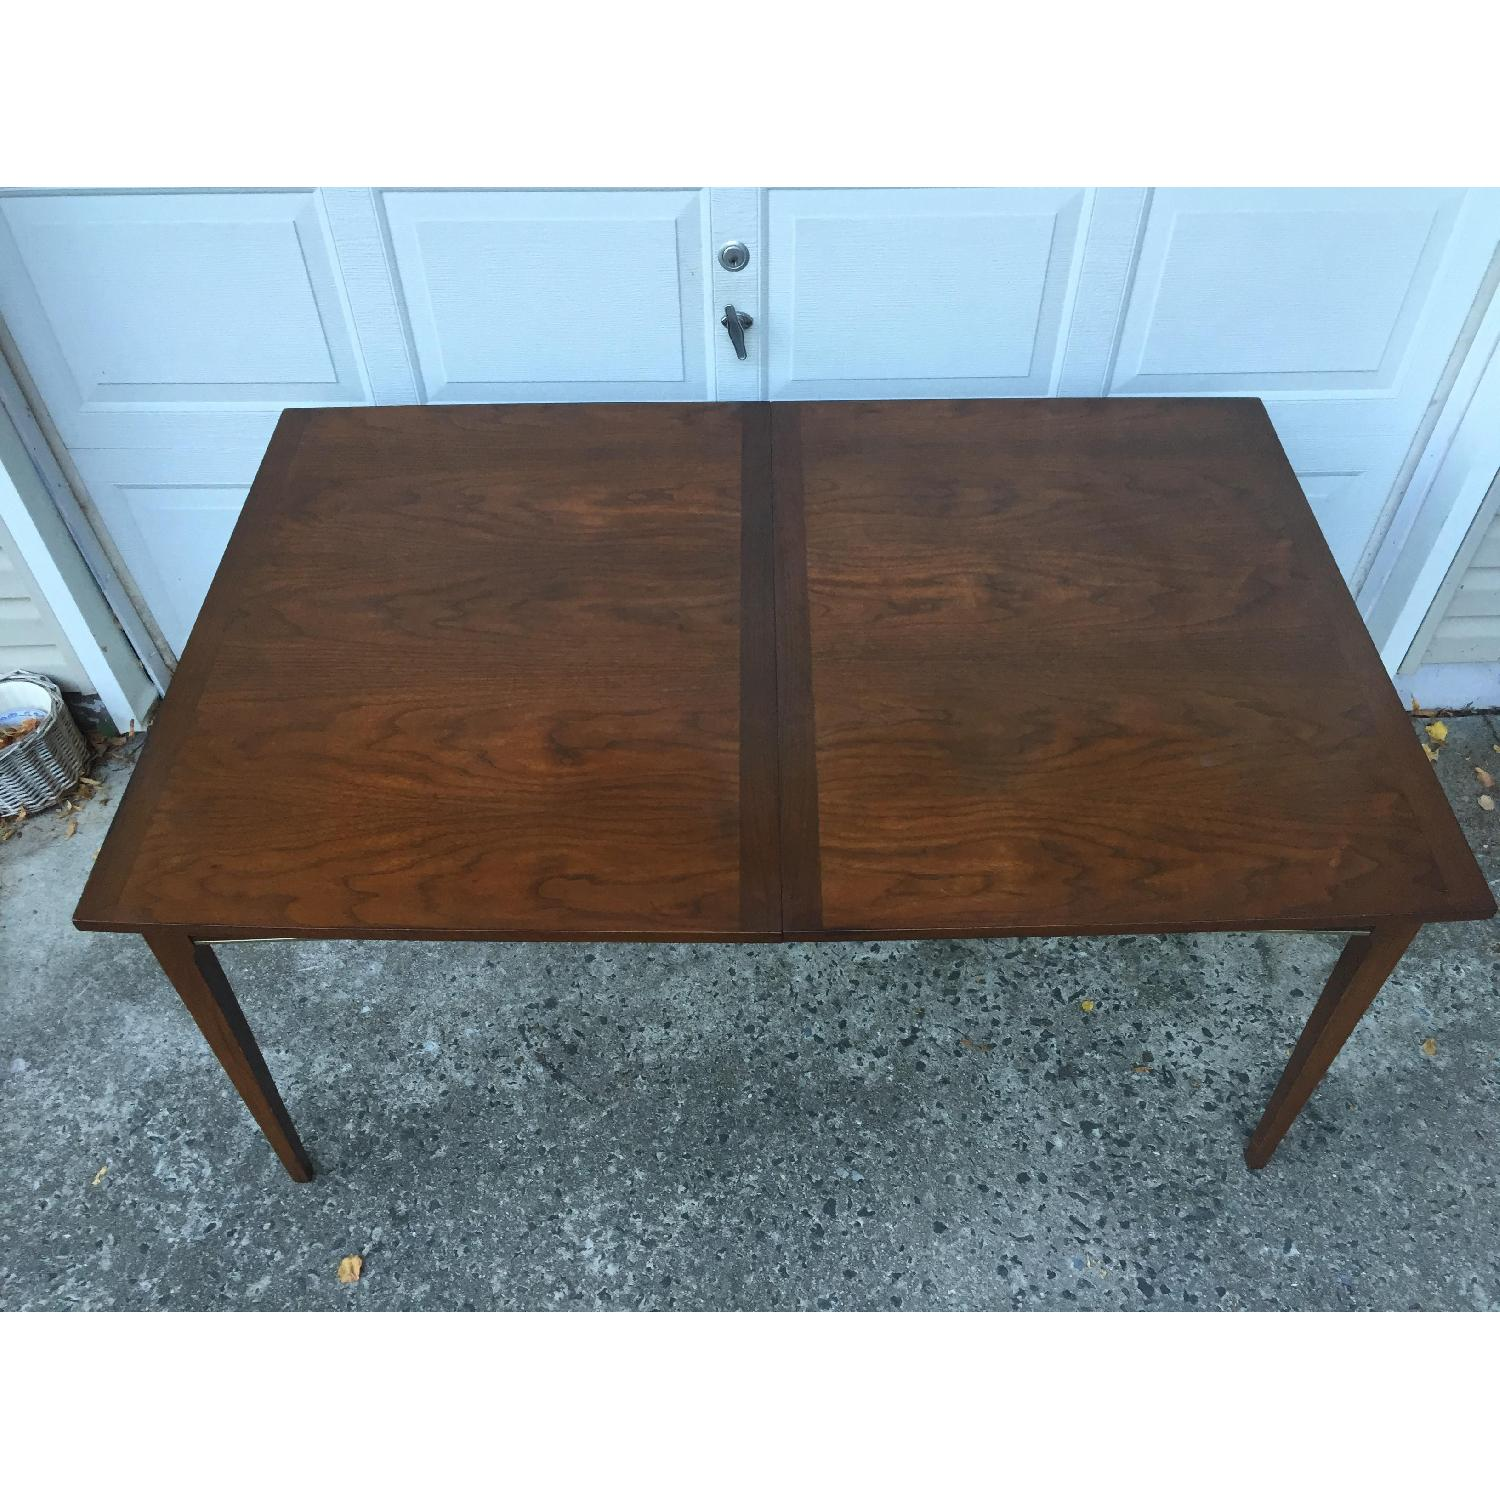 Mid Century Modern Walnut Dining Table with Brass Accents - image-5